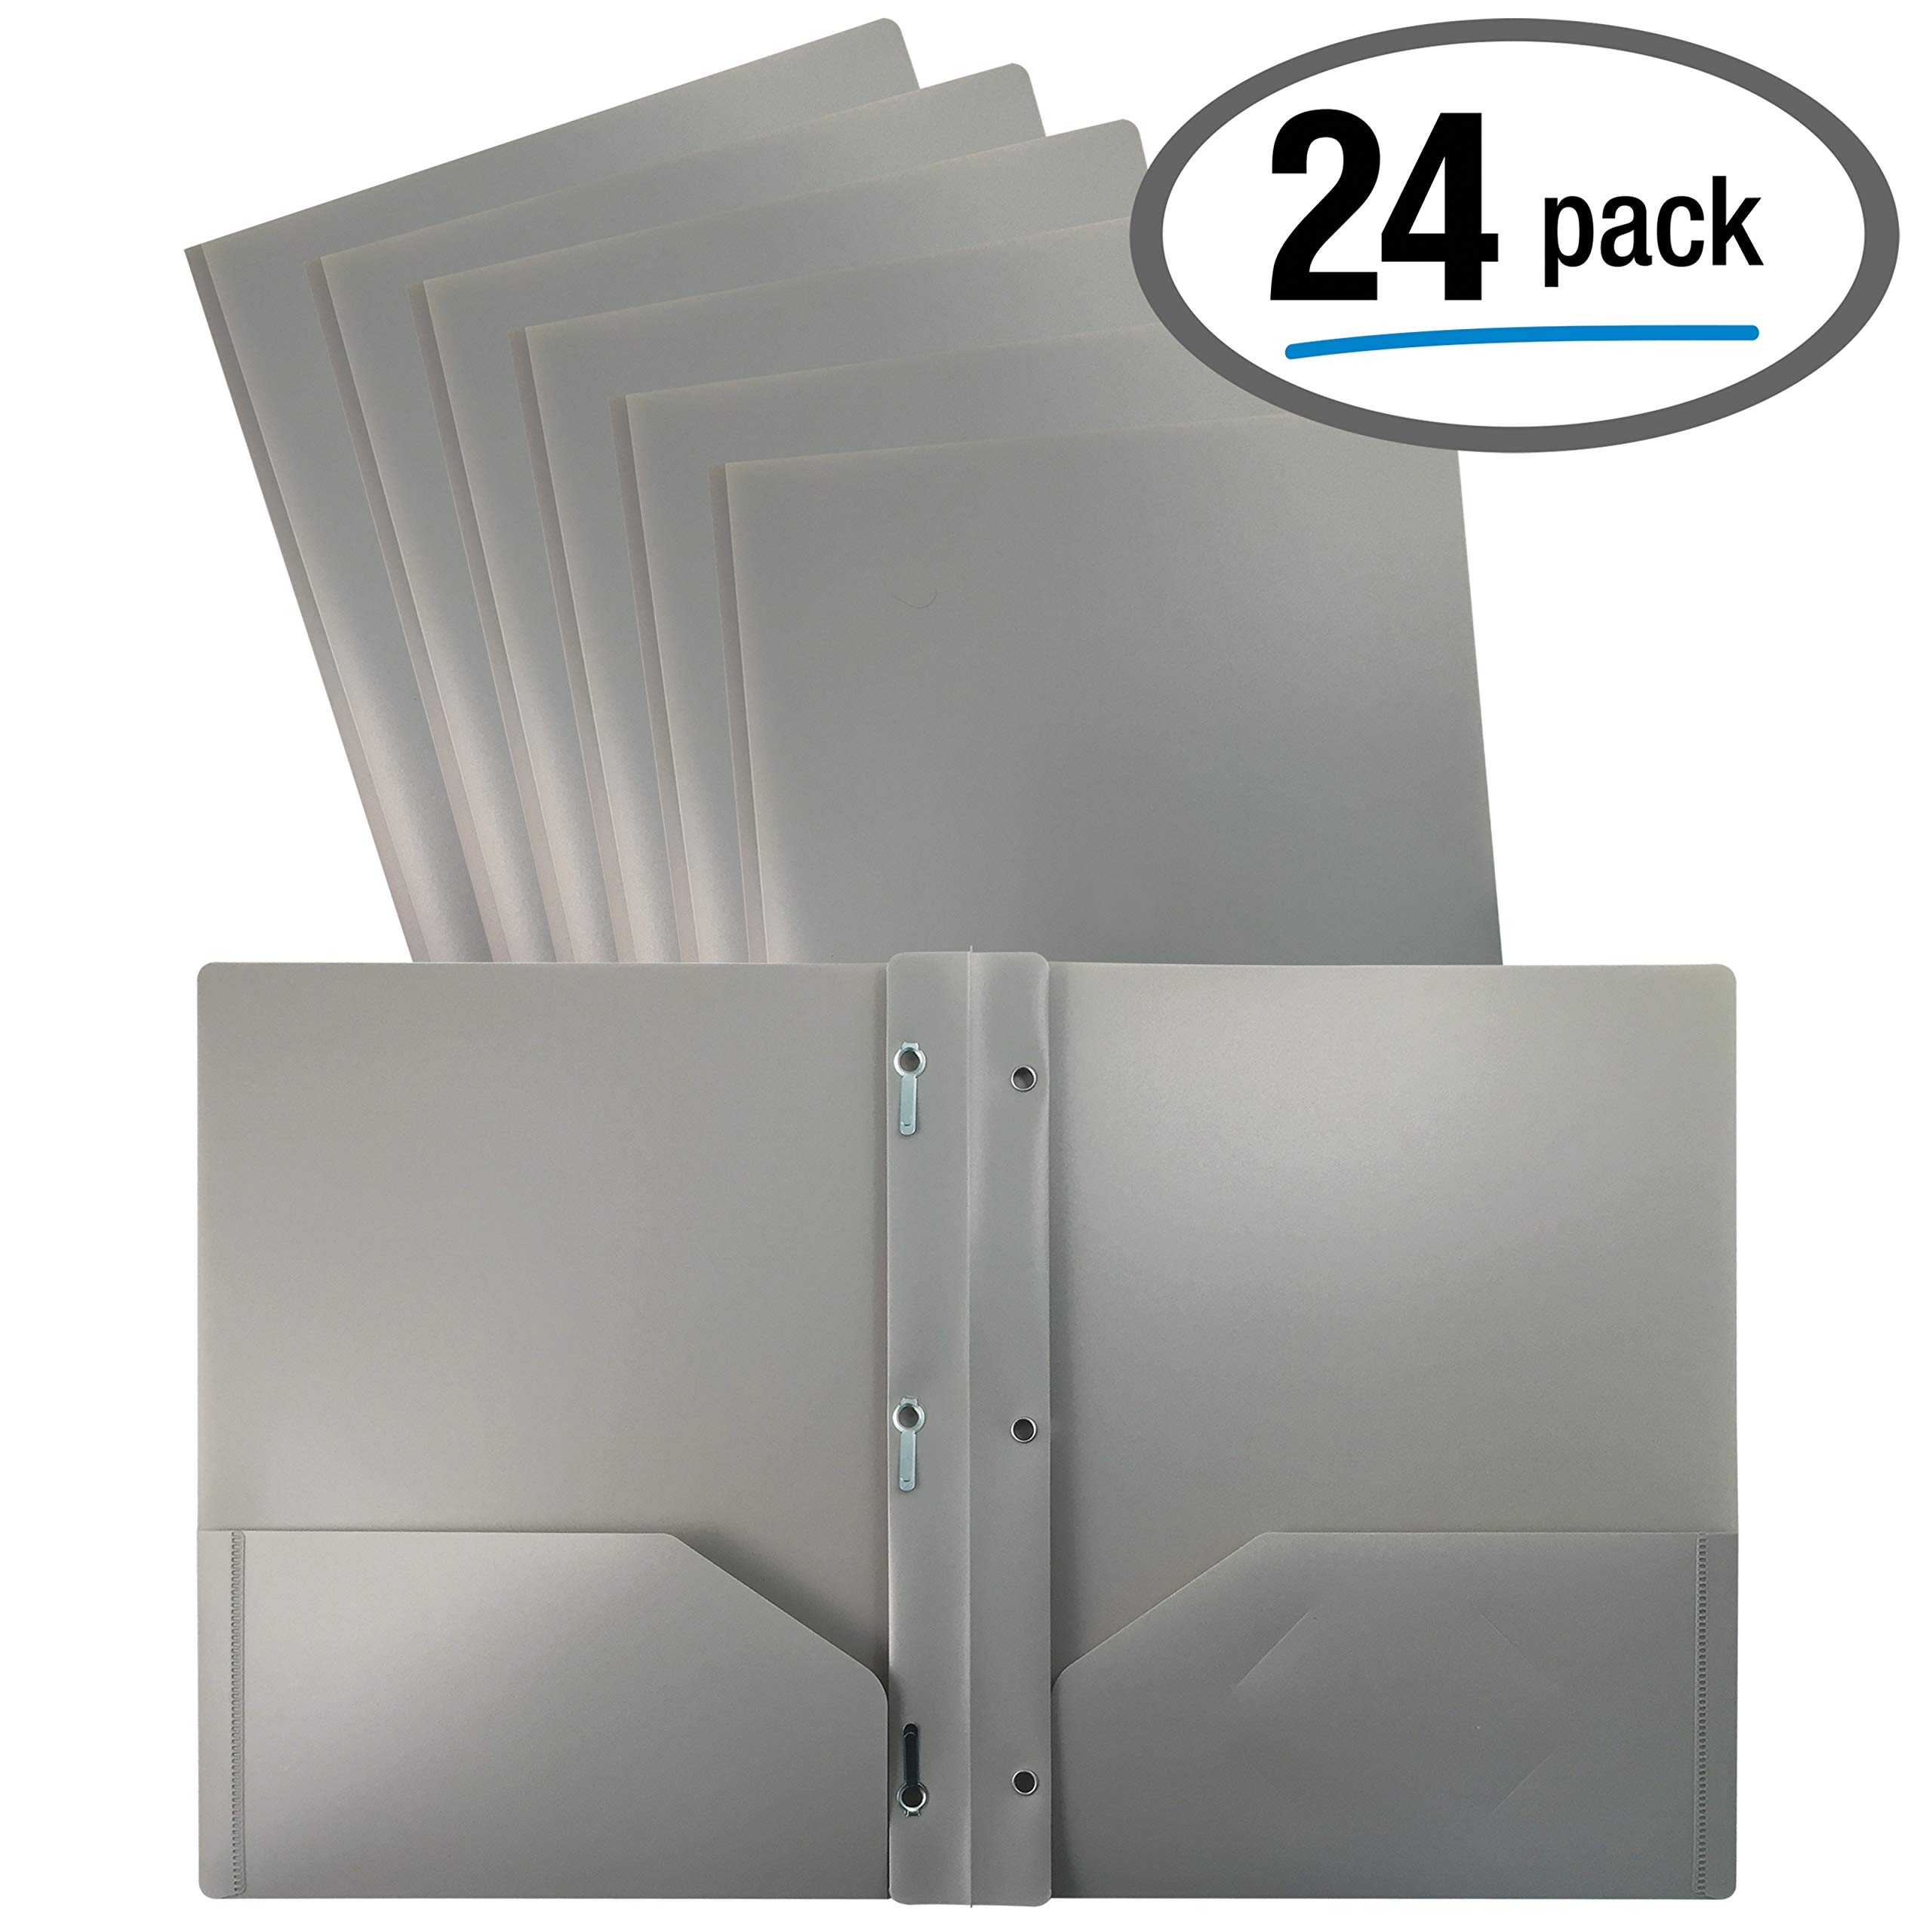 Better Office Products Gray Plastic 2 Pocket Folders with Prongs, 24 Pack, Heavyweight, Letter Size Poly Folders with 3 Metal Prongs Fastener Clips, Gray by Better Office Products